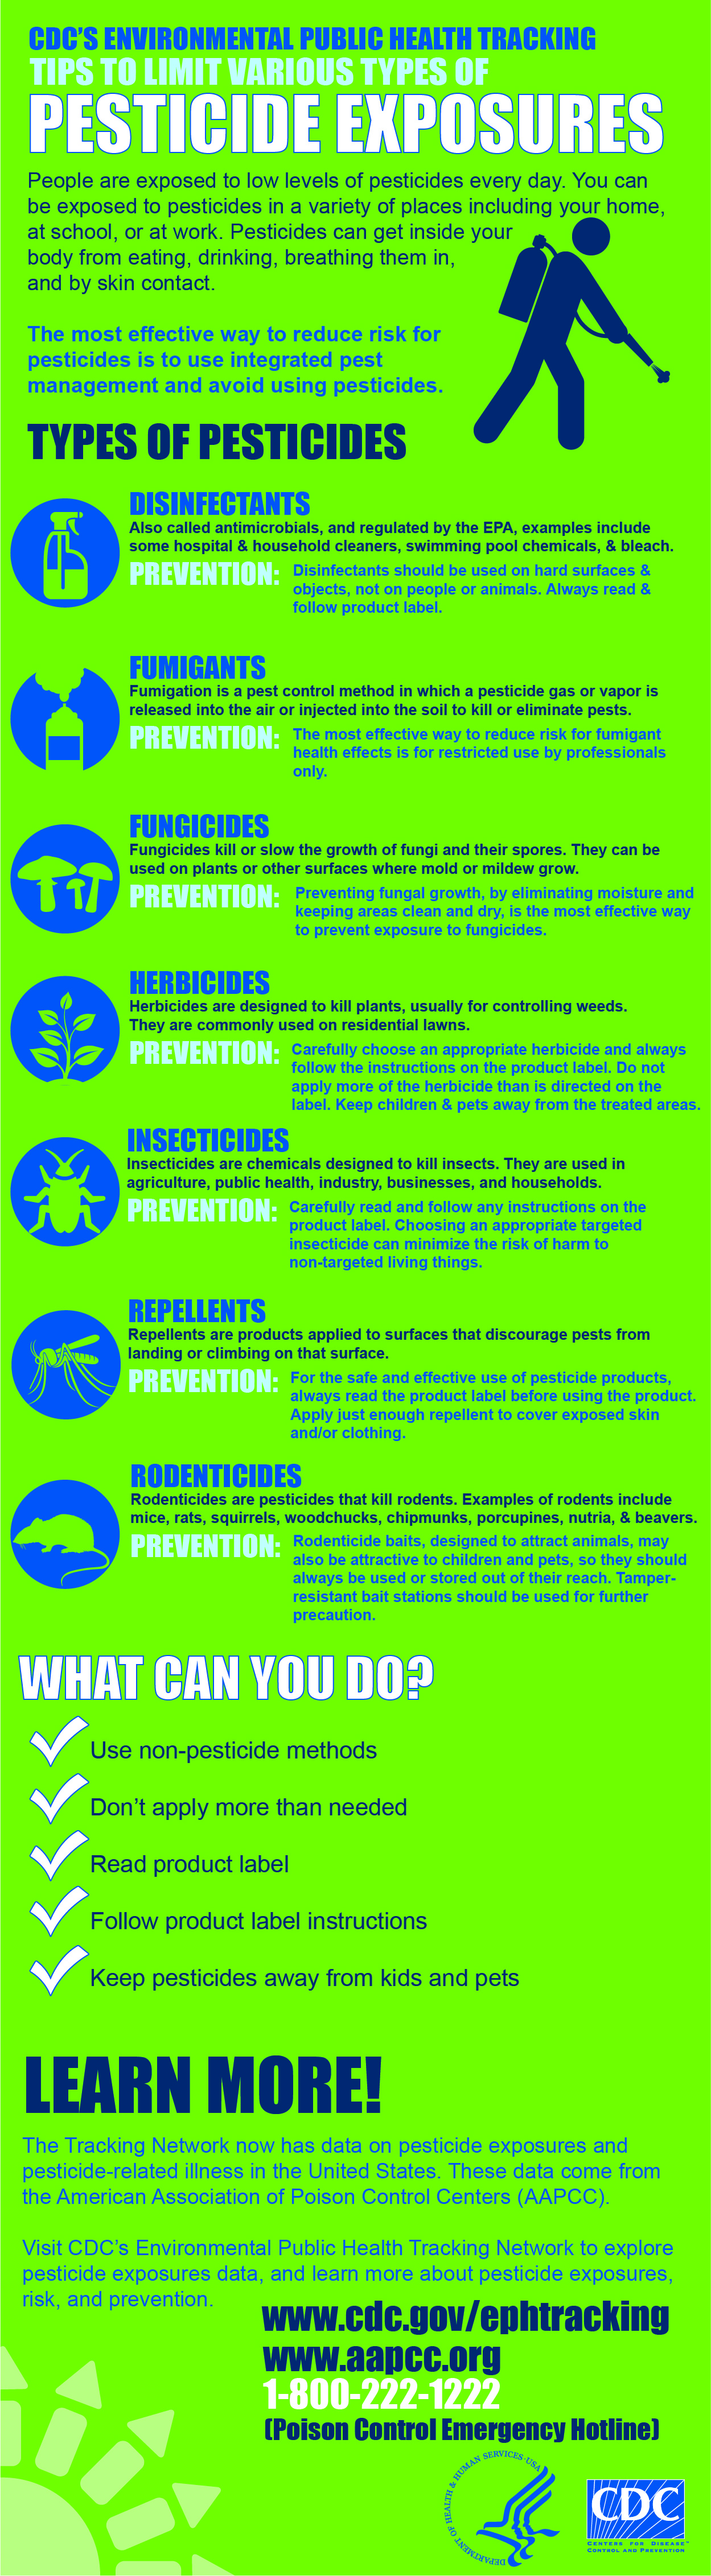 CDC's Environmental Public Health Tracking tips to limit various types of pesticide exposures